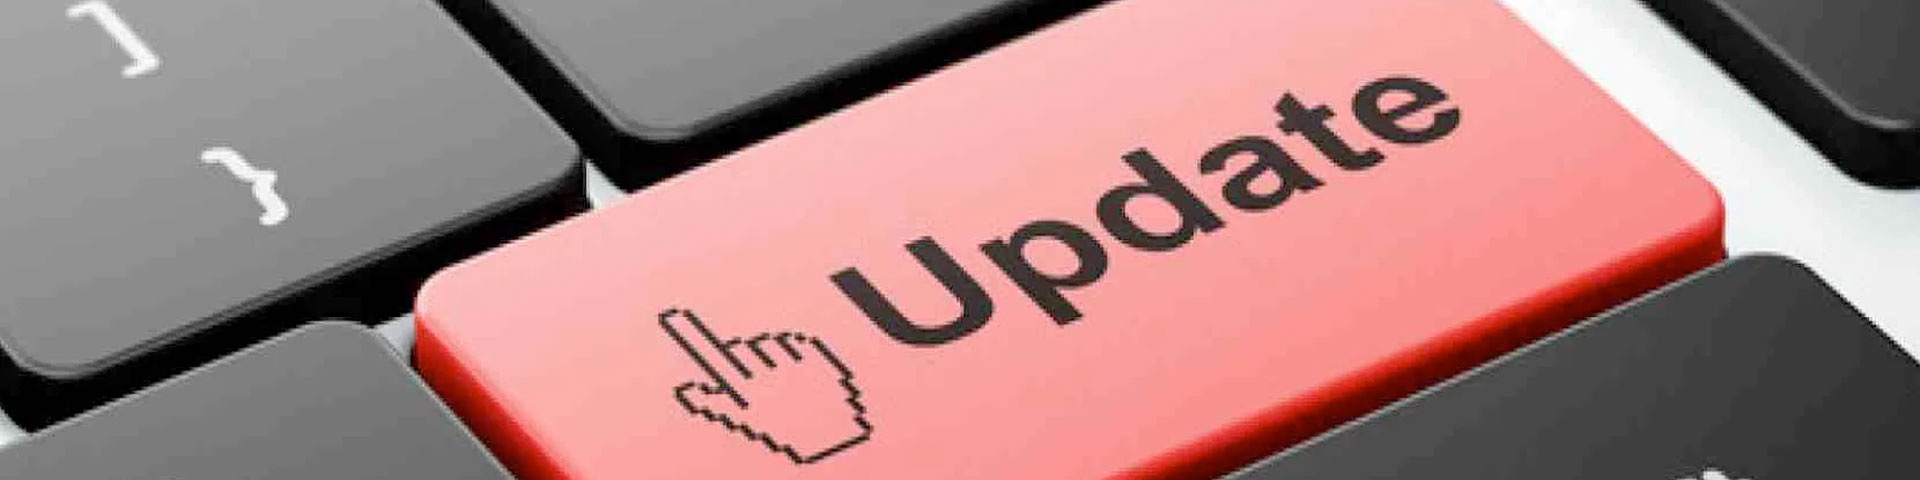 "A return key on the keyboard with the word ""Update"" imprinted on it."